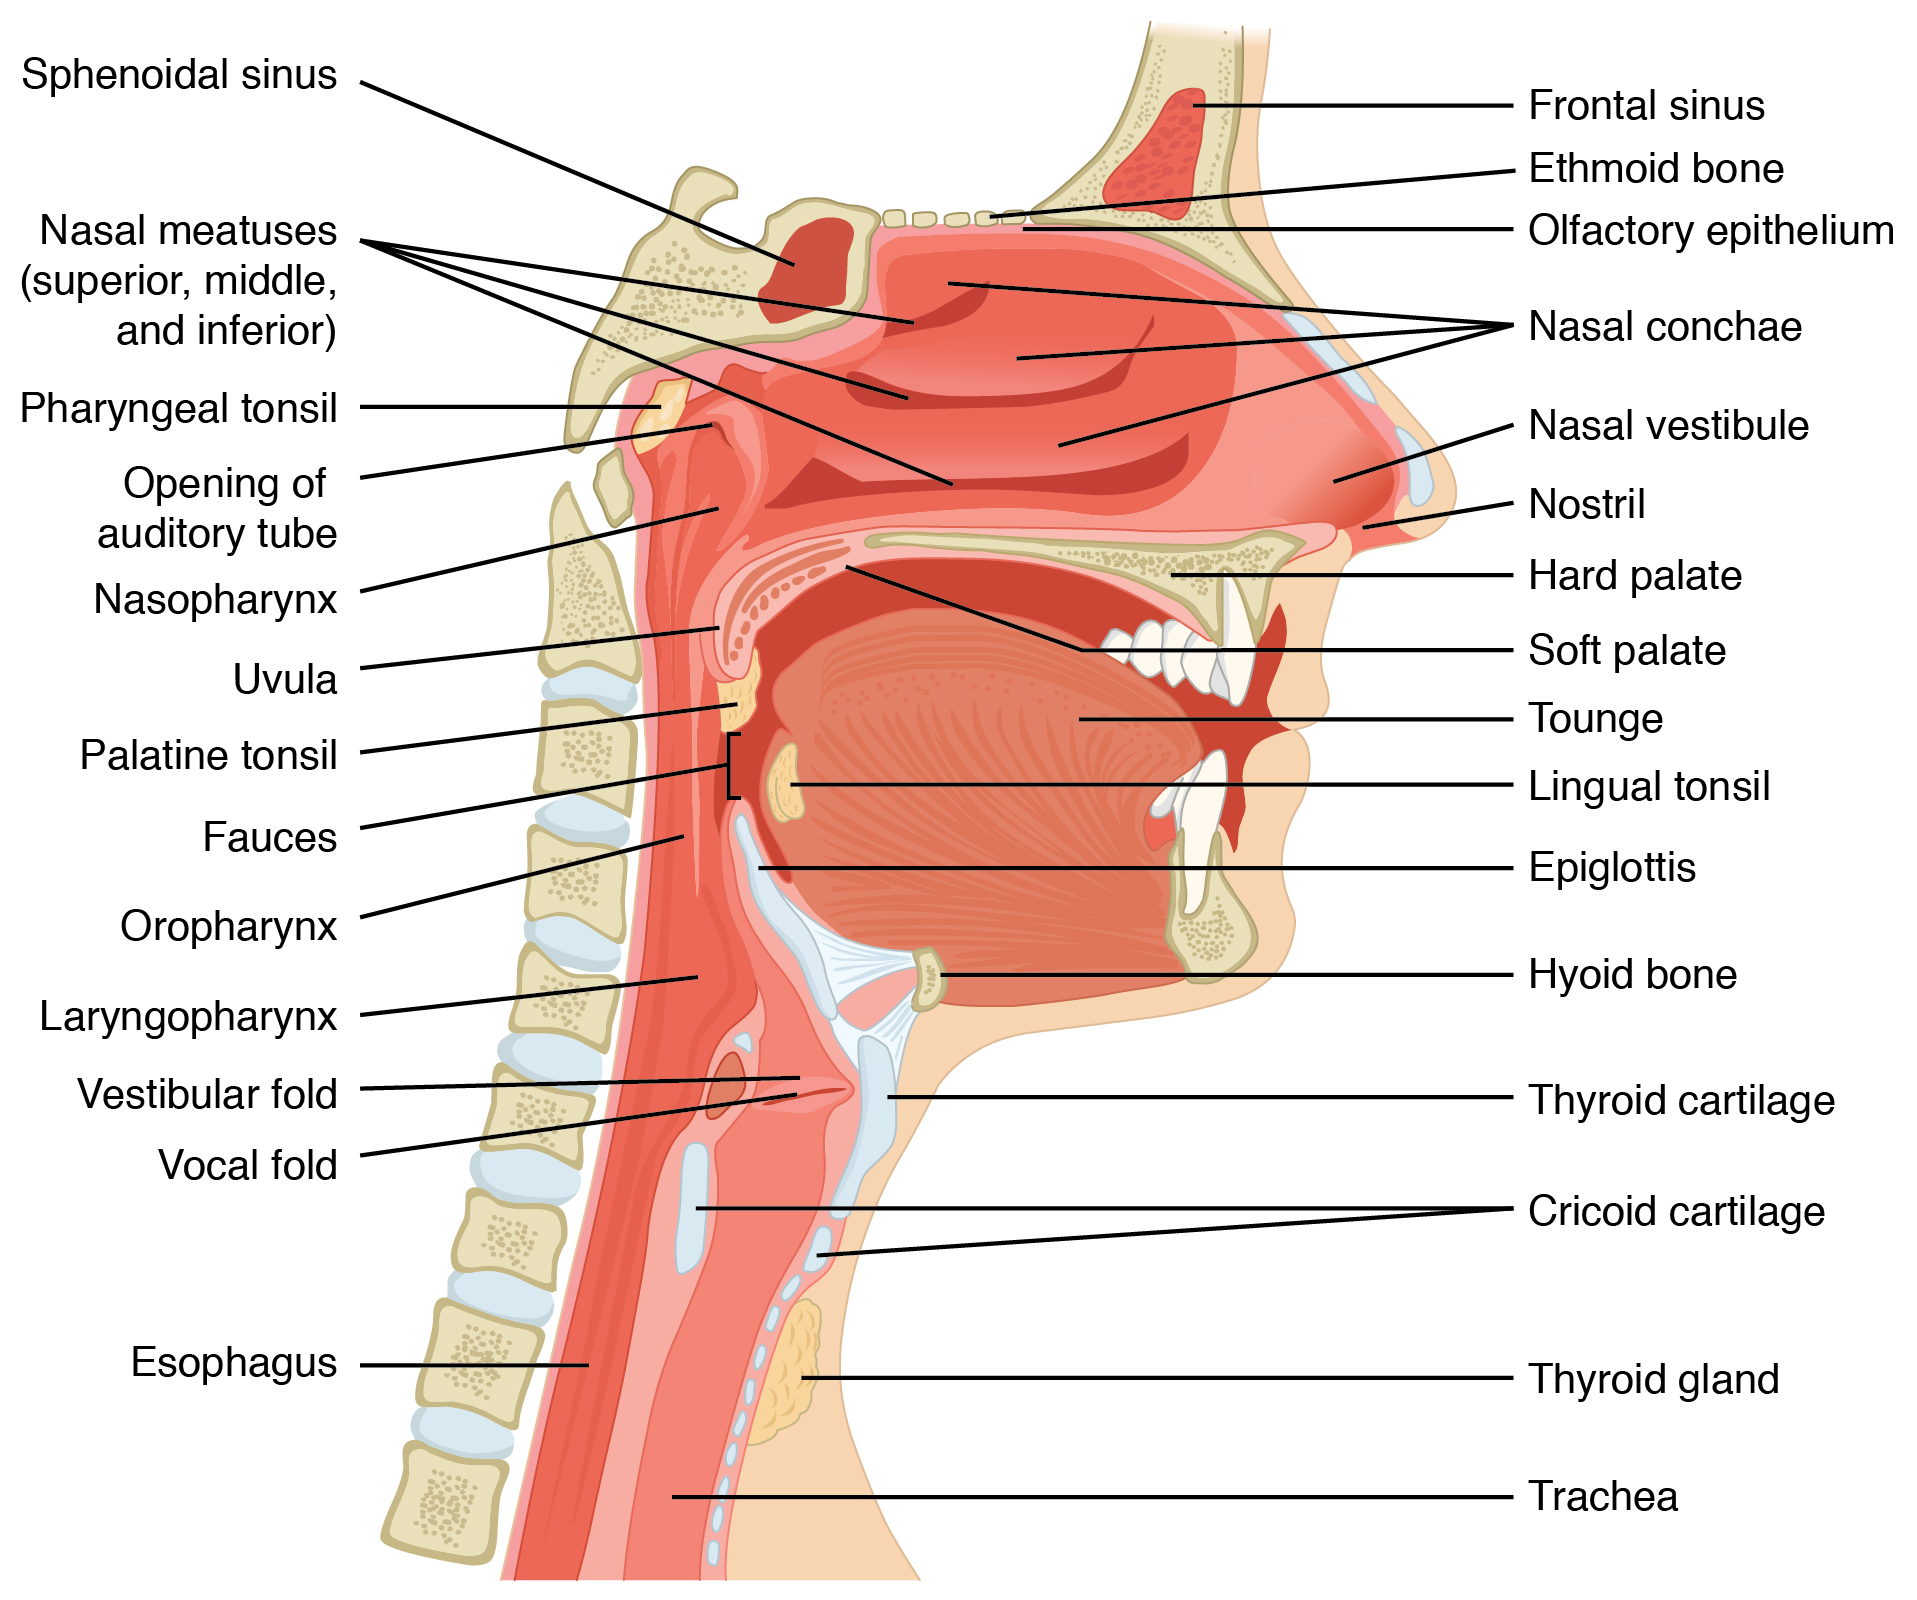 This figure shows a cross section view of the nose and throat. The major parts are labeled.